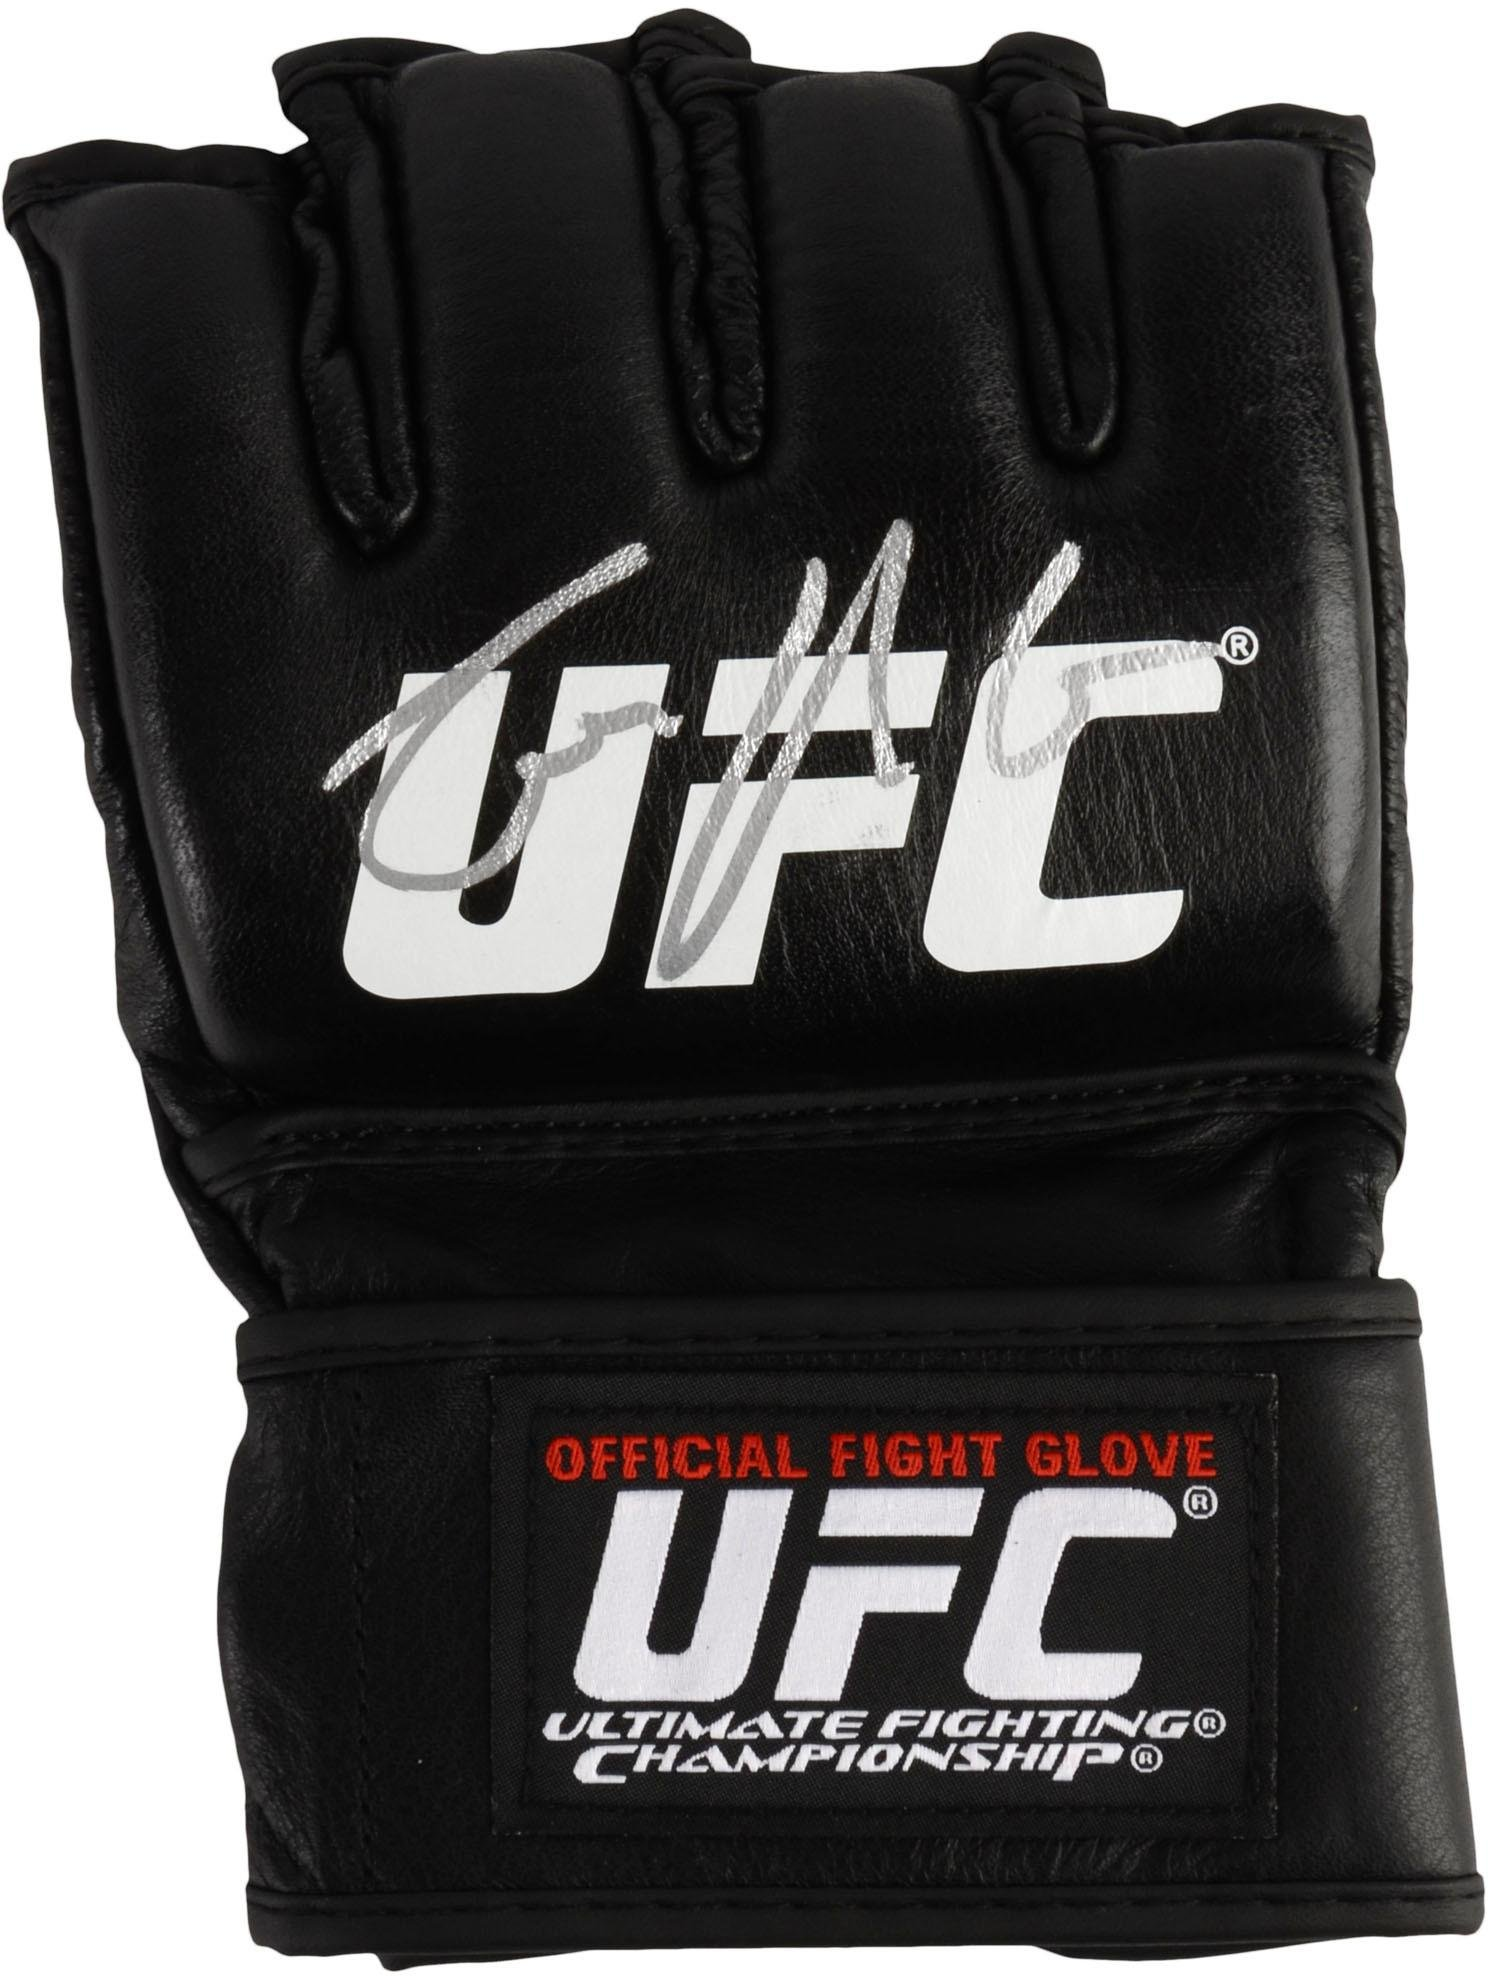 Conor McGregor Ultimate Fighting Championship Autographed Fight Model Glove  - Fanatics Authentic Certified 83ba568d6